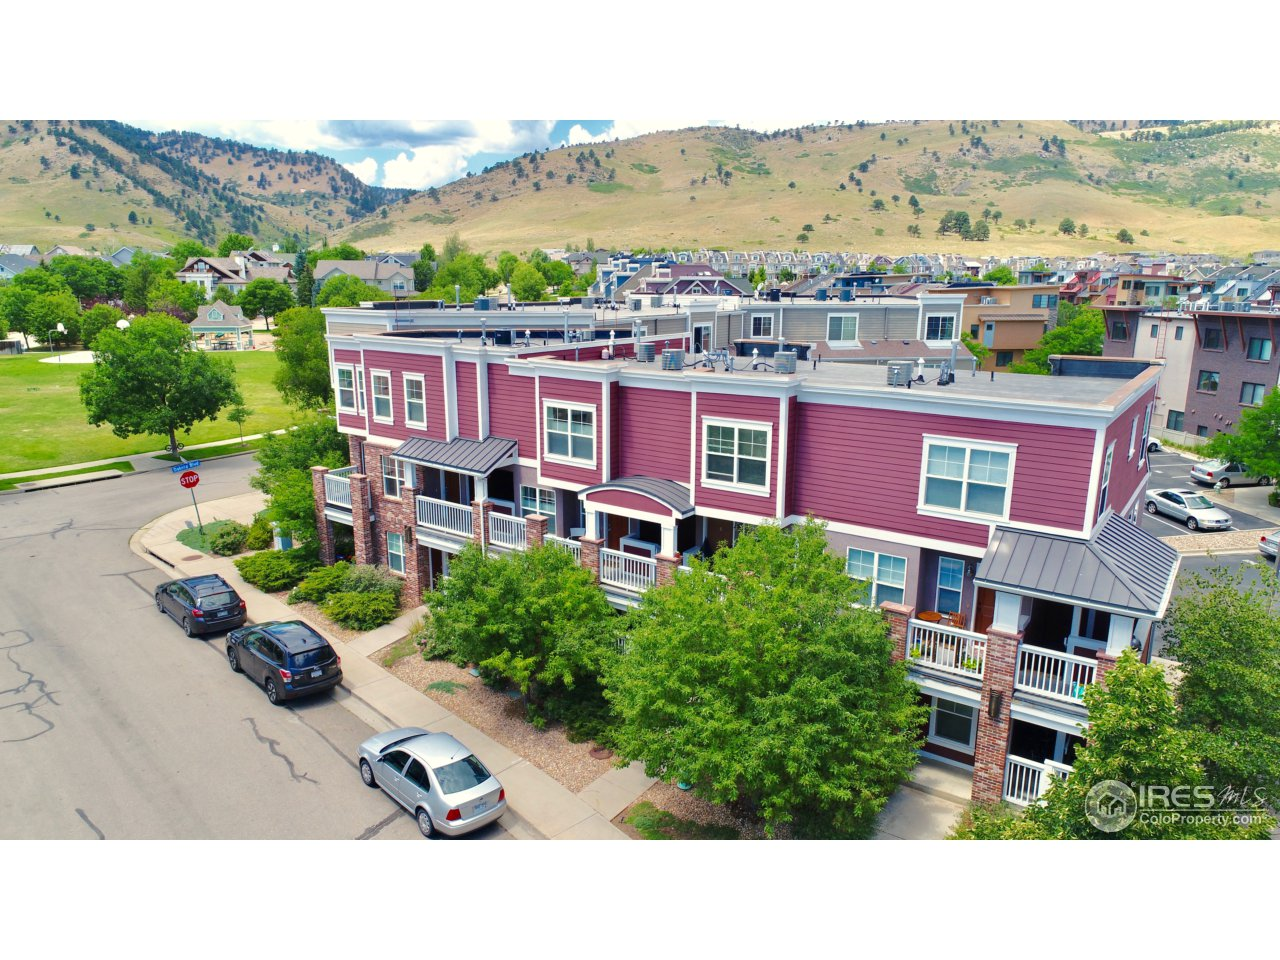 801 Chinle Ave C, Boulder, CO 80304